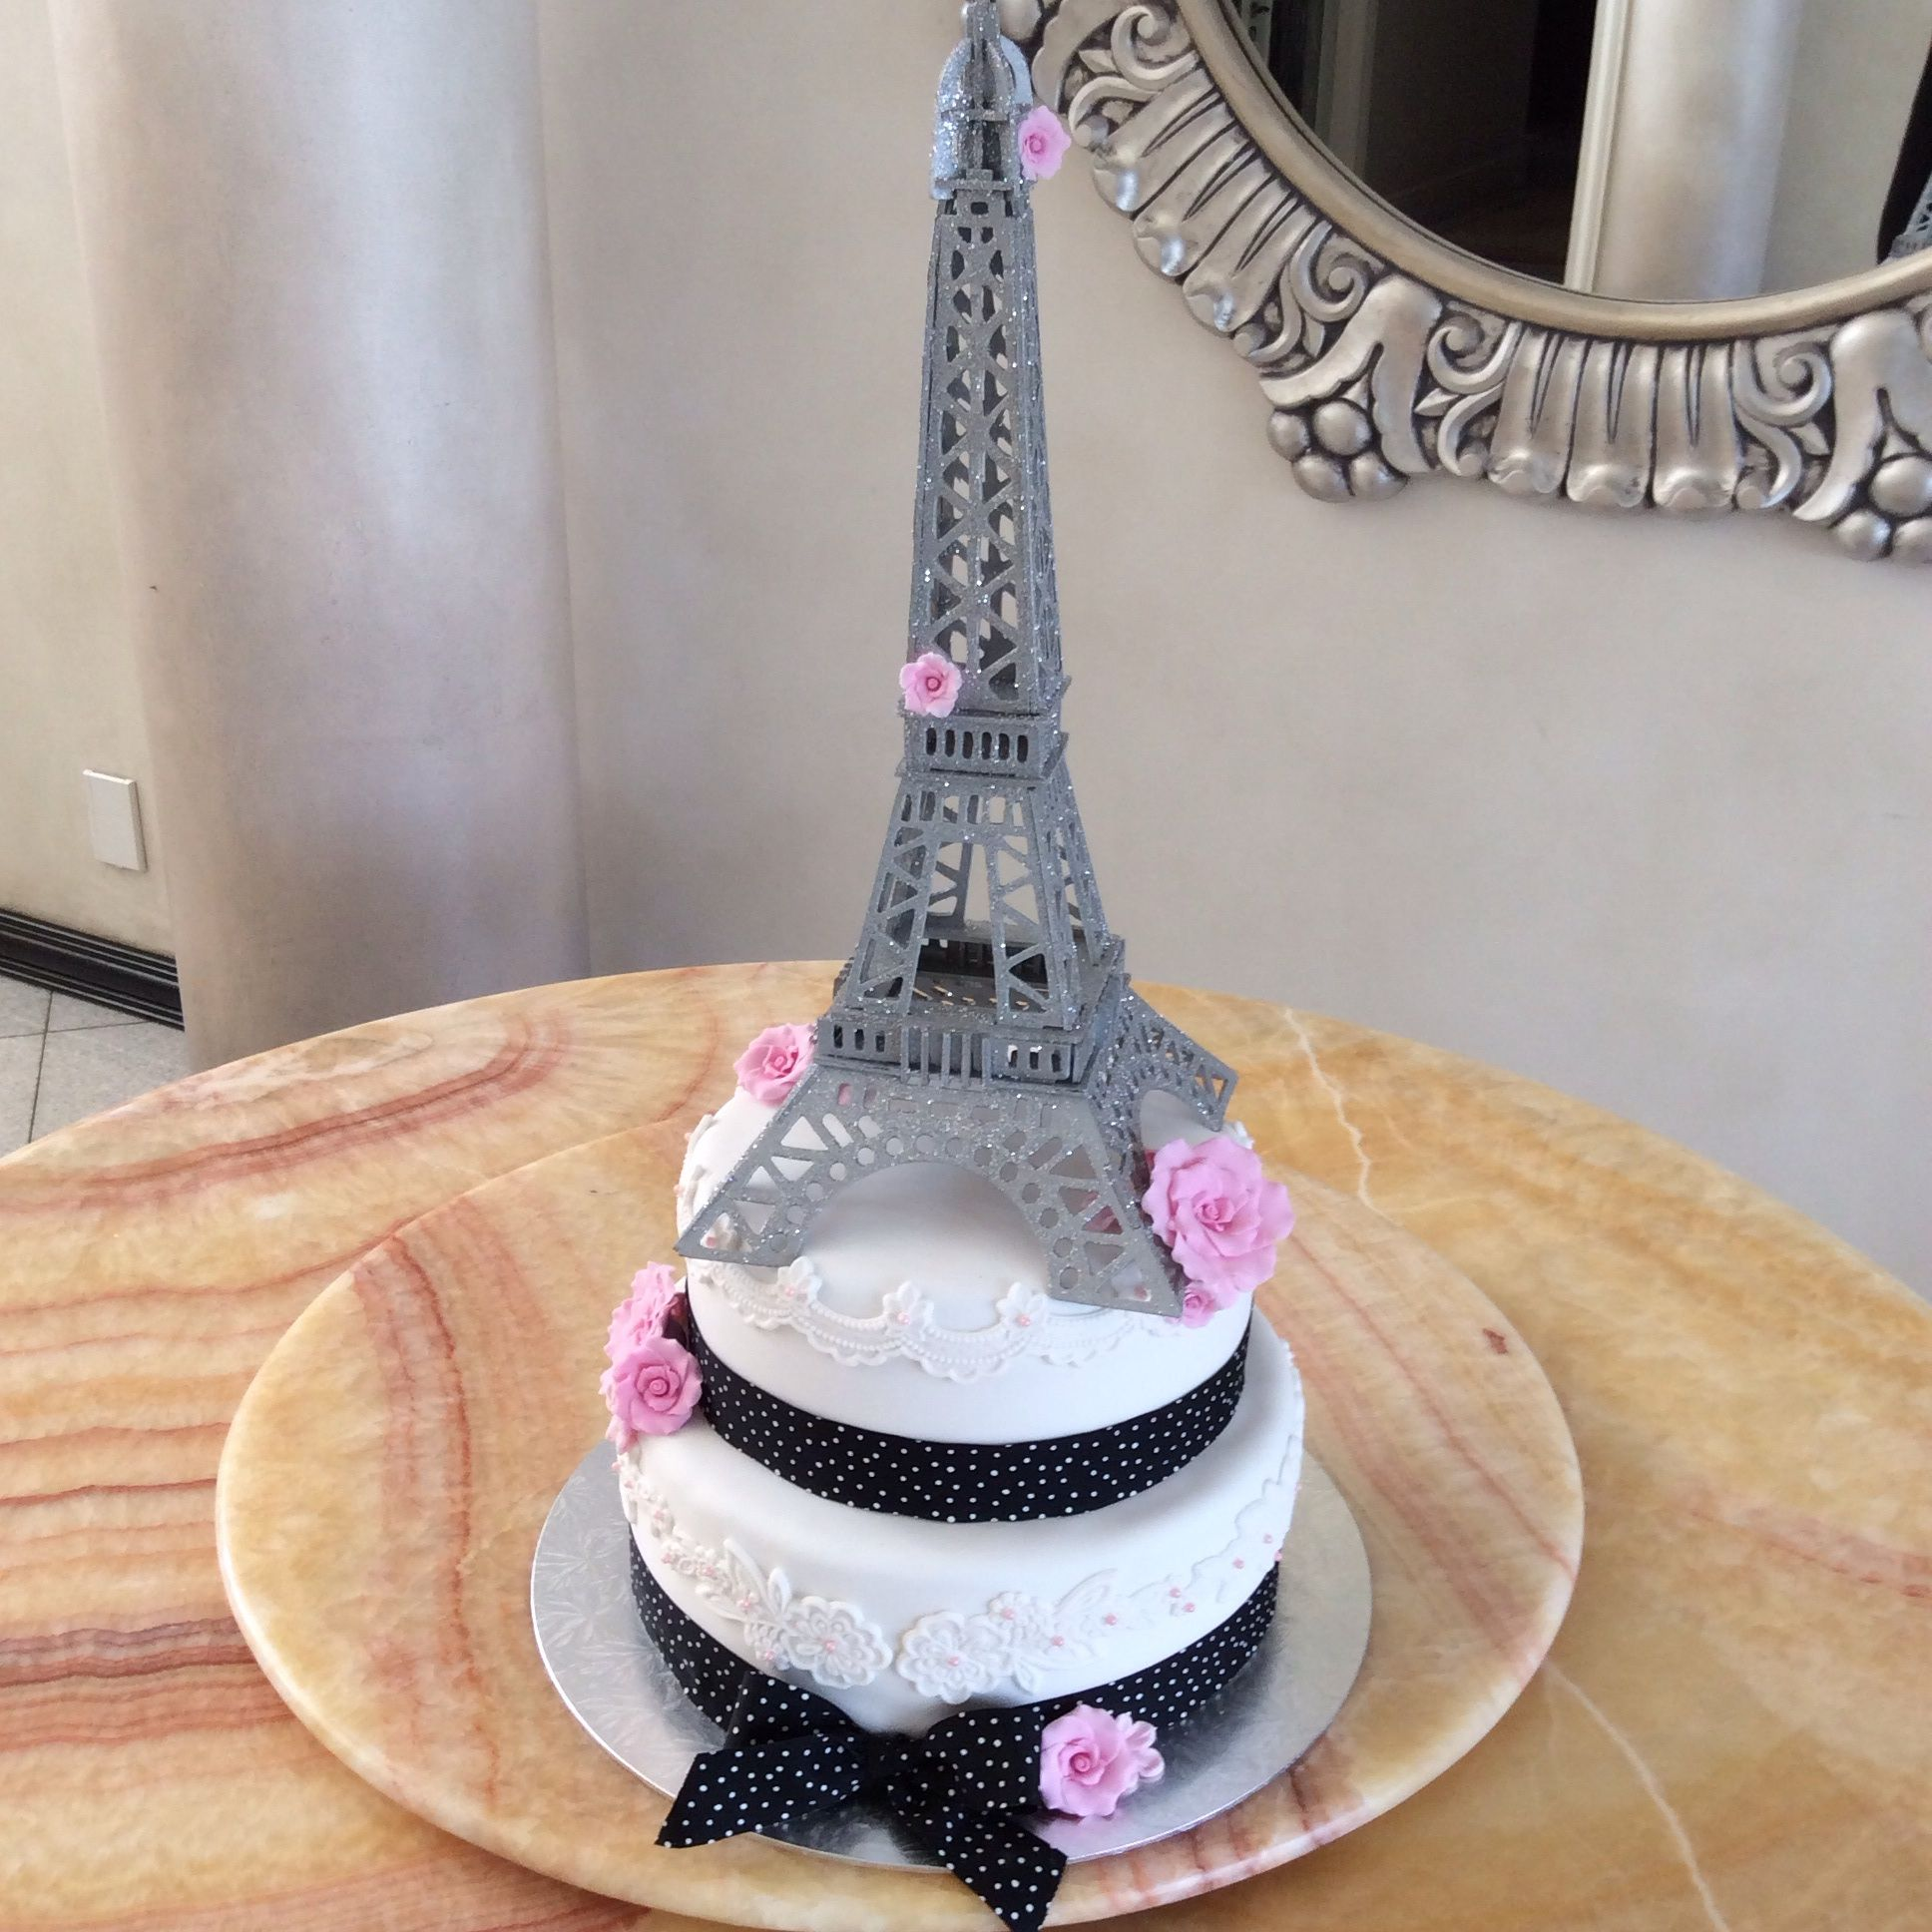 Kelly's Creations Cakes